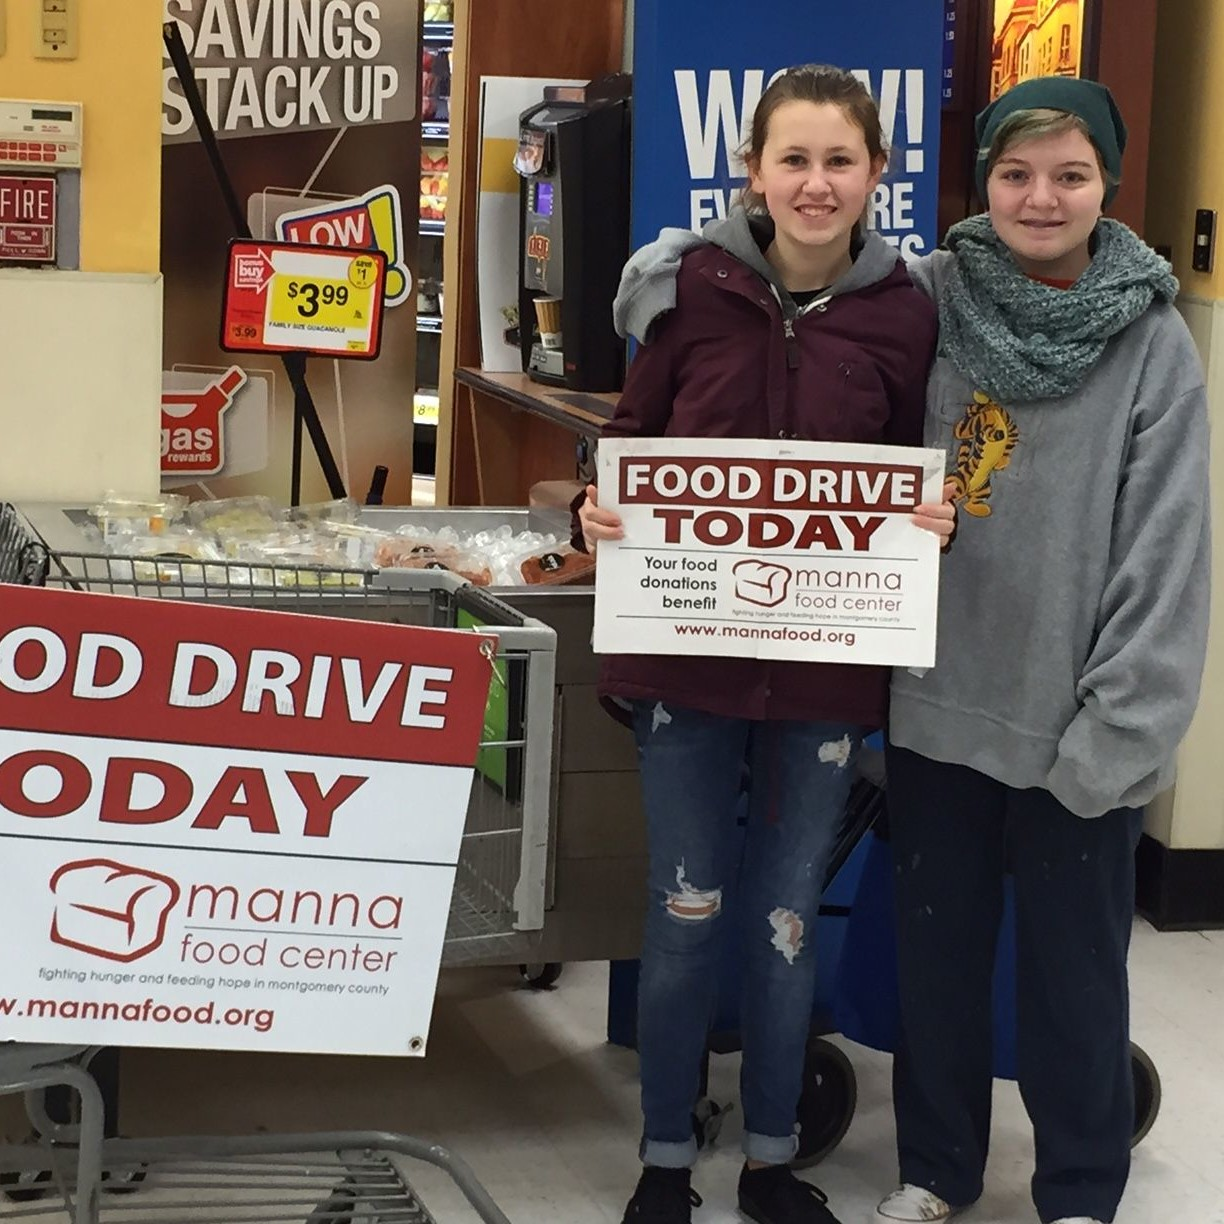 Kids promoting food drive